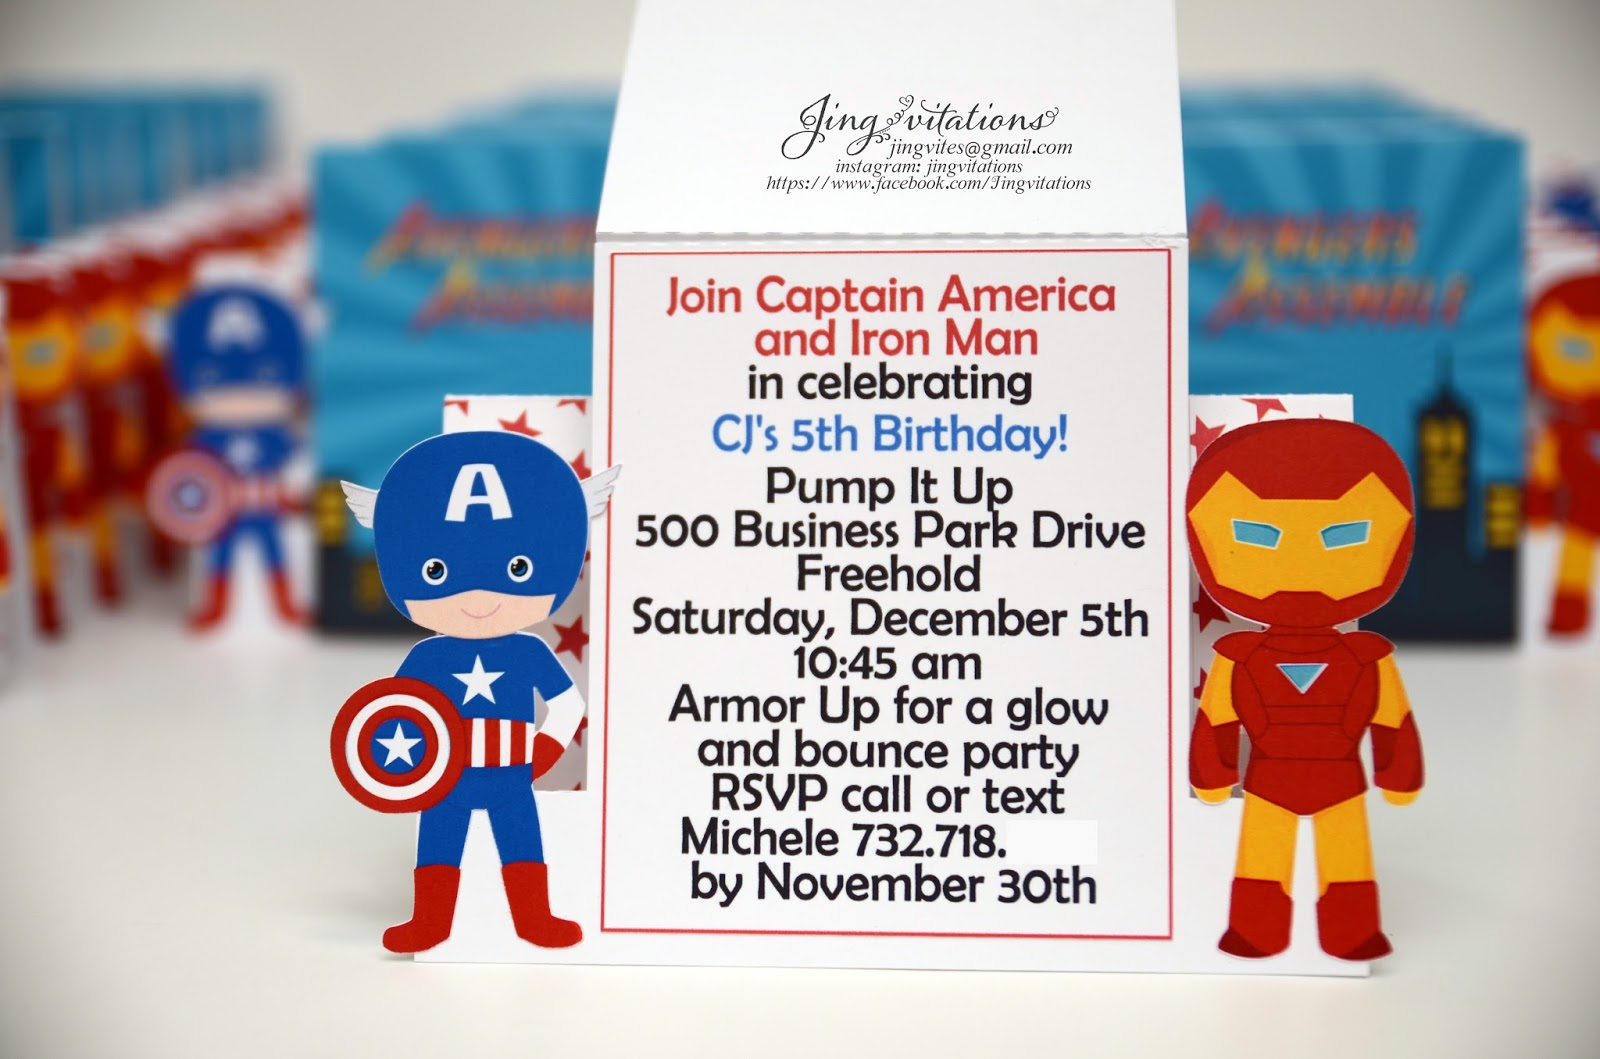 Jingvitations Capt America and IronMan Invitations